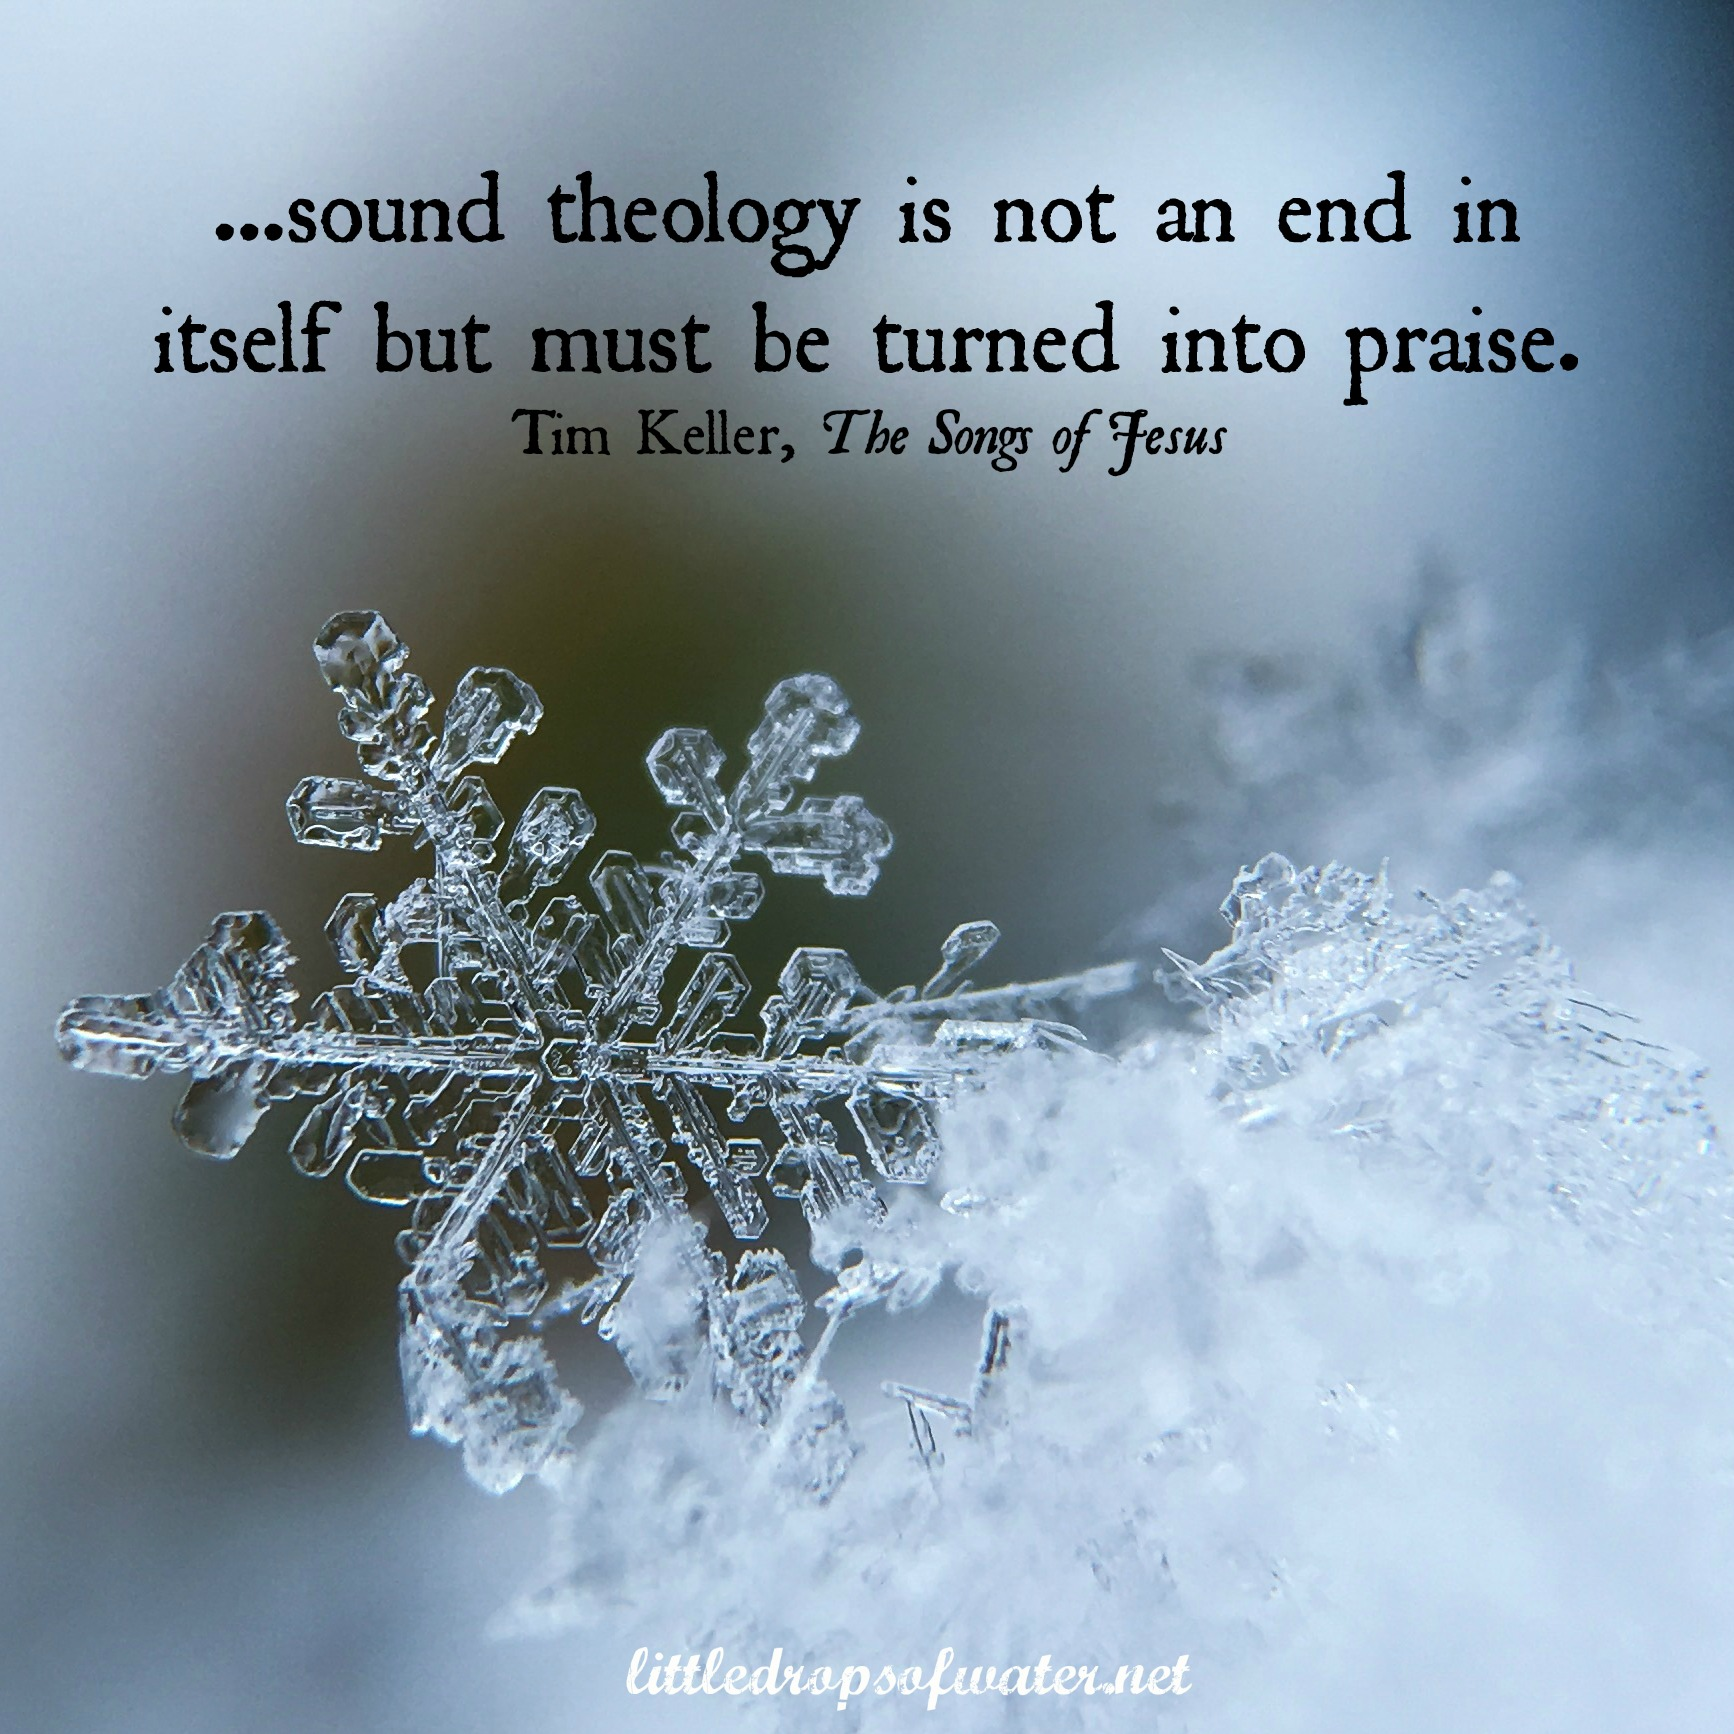 Wednesdays with Words: Theology & Praise